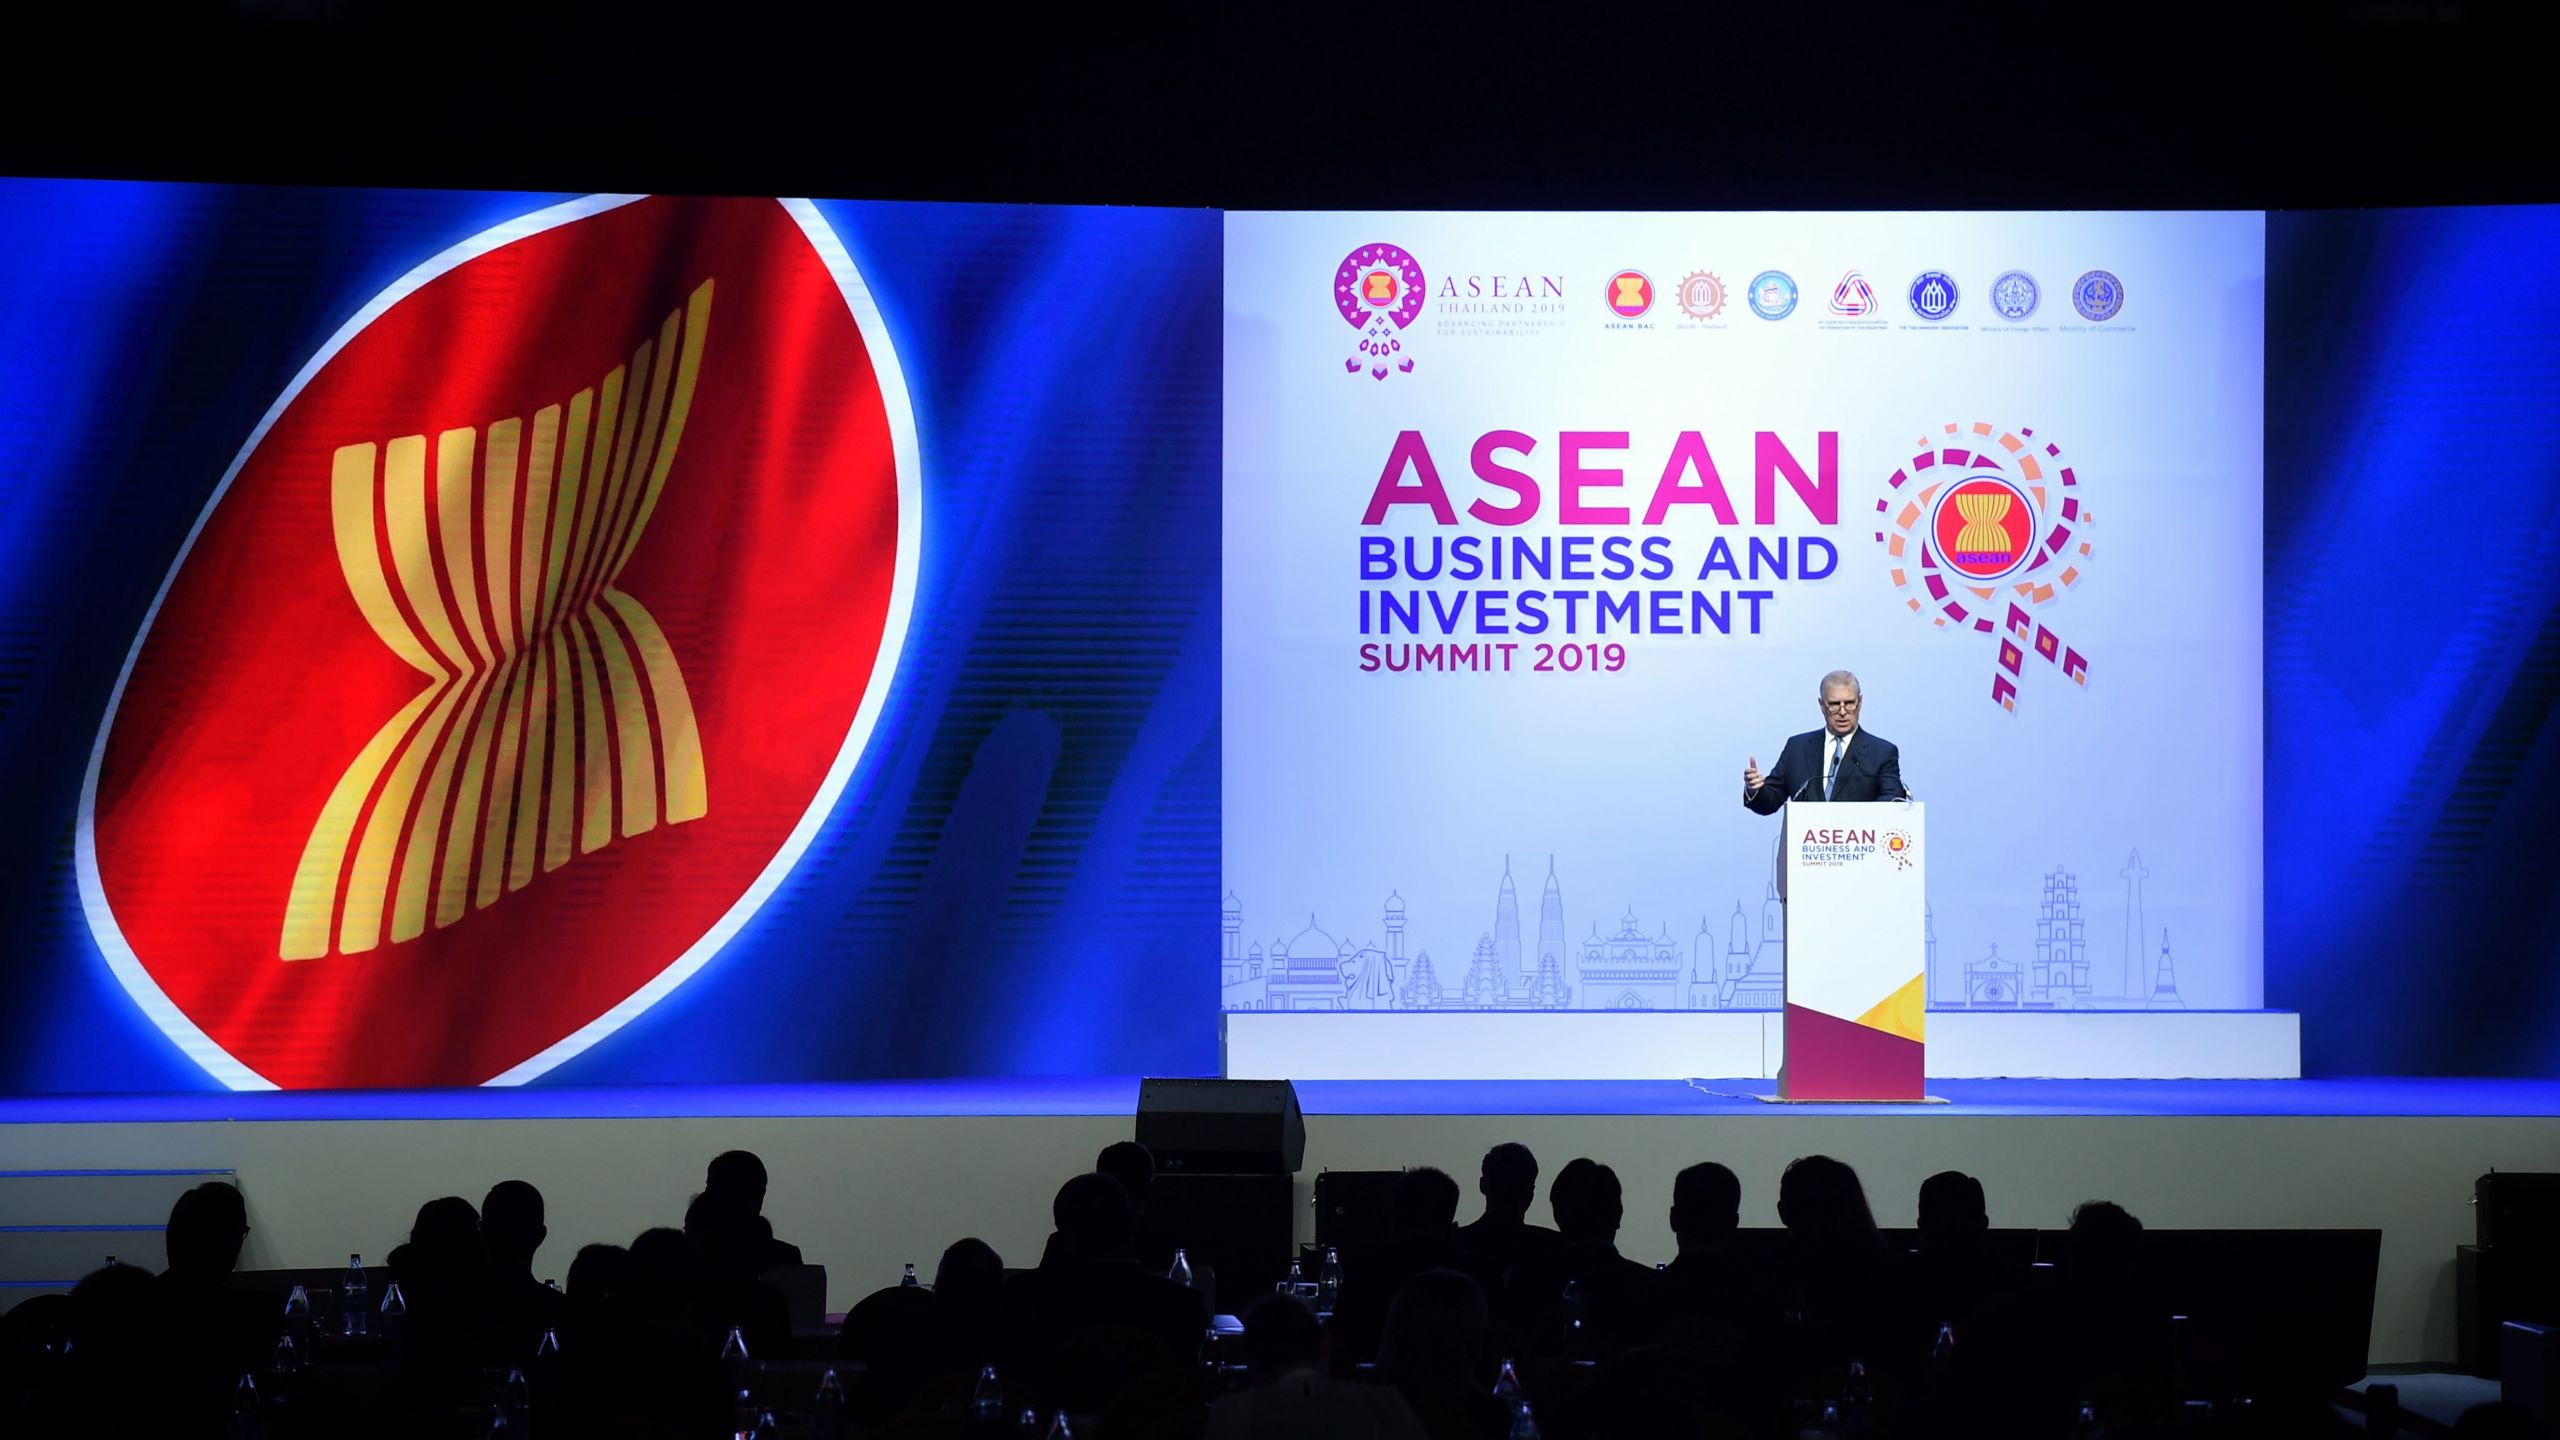 Britain's Prince Andrew, Duke of York speaks at the ASEAN Business and Investment Summit in Bangkok on Nov. 3, 2019, on the sidelines of the 35th Association of Southeast Asian Nations (ASEAN) Summit. (Credit: LILLIAN SUWANRUMPHA/AFP via Getty Images)